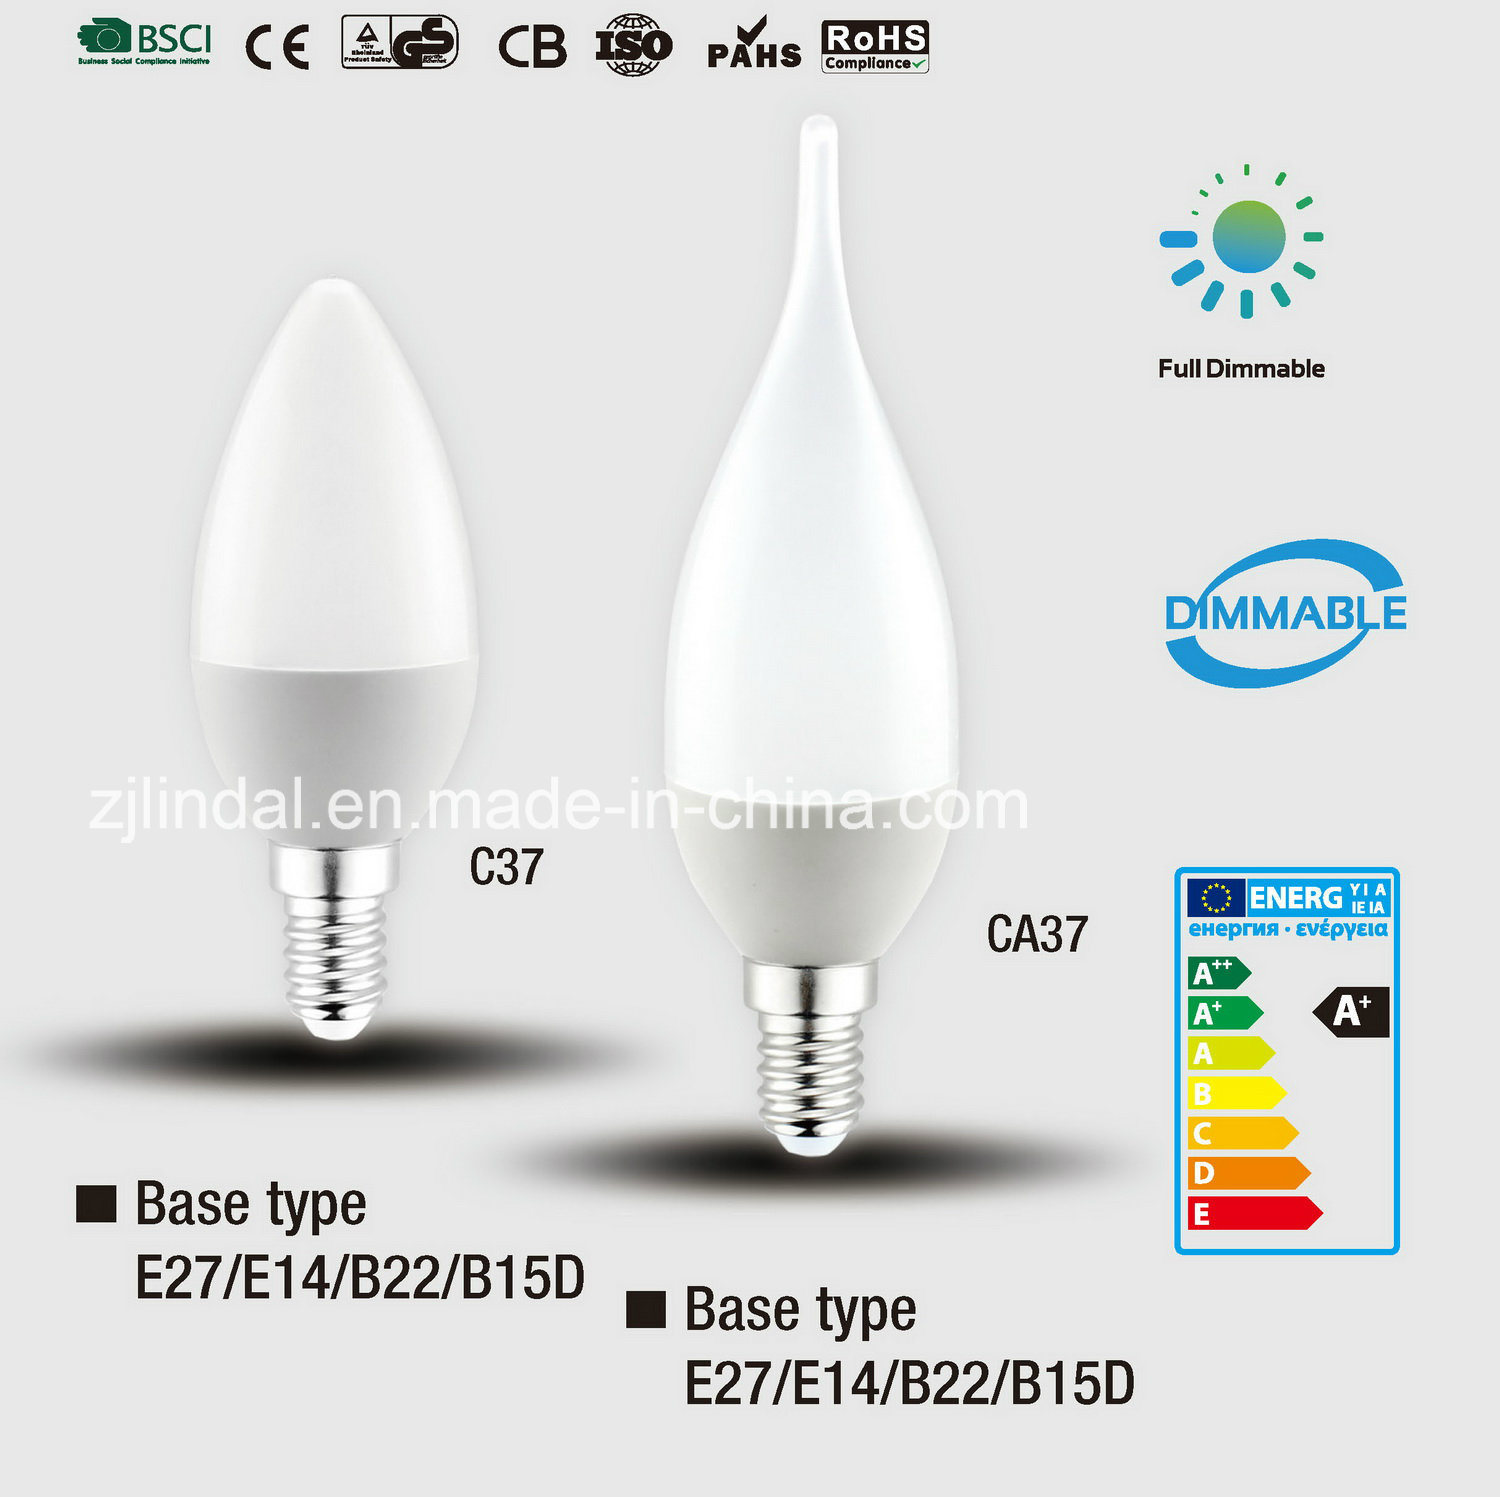 Dimmable LED Candle Bulb C37-Sbl